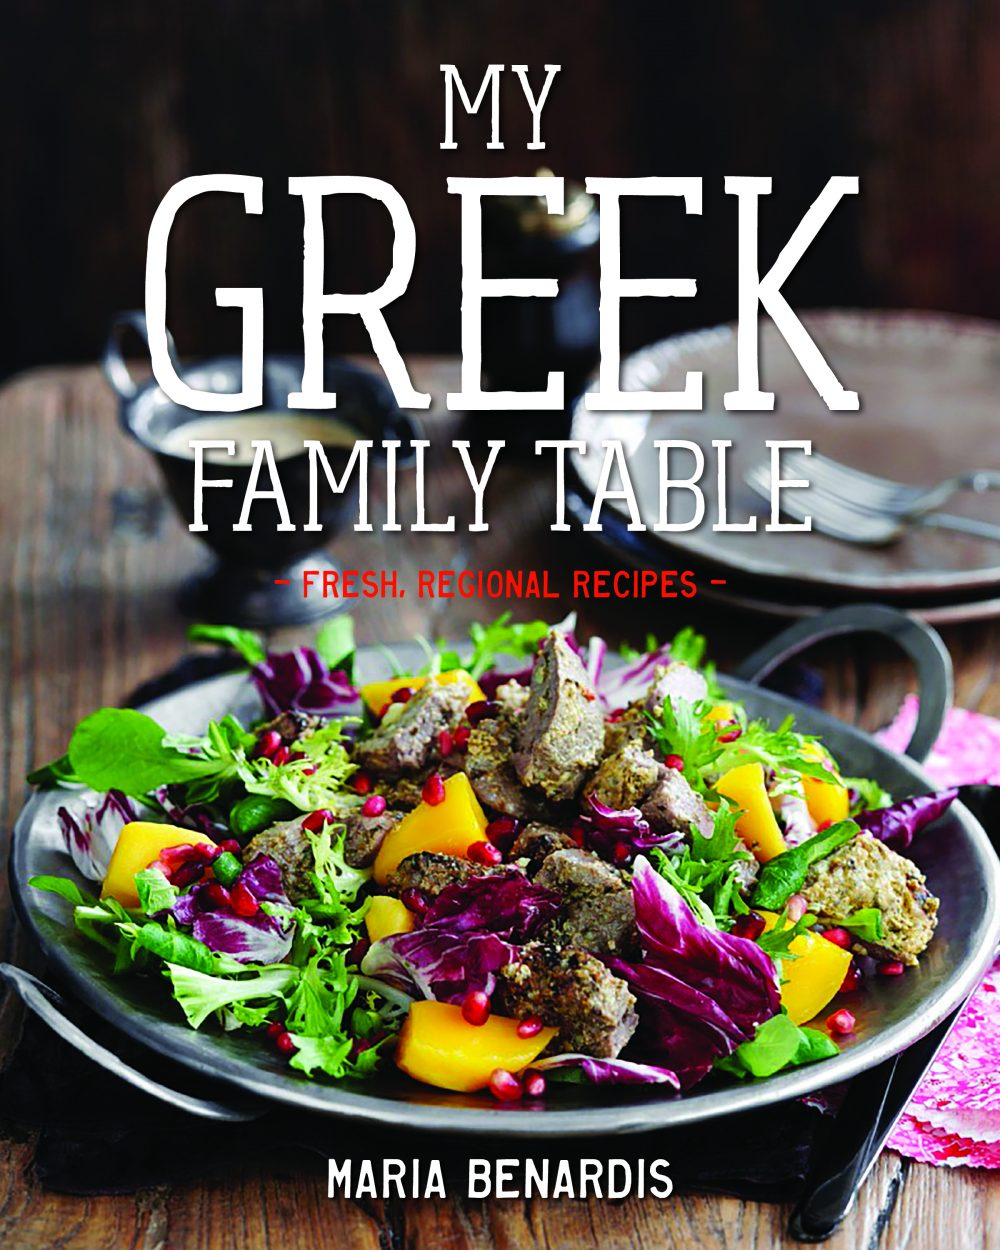 Tuesday June 27 – Natural Gourmet Institute Cooking Class & Book Signing- My Greek Summer Vegan Family Table